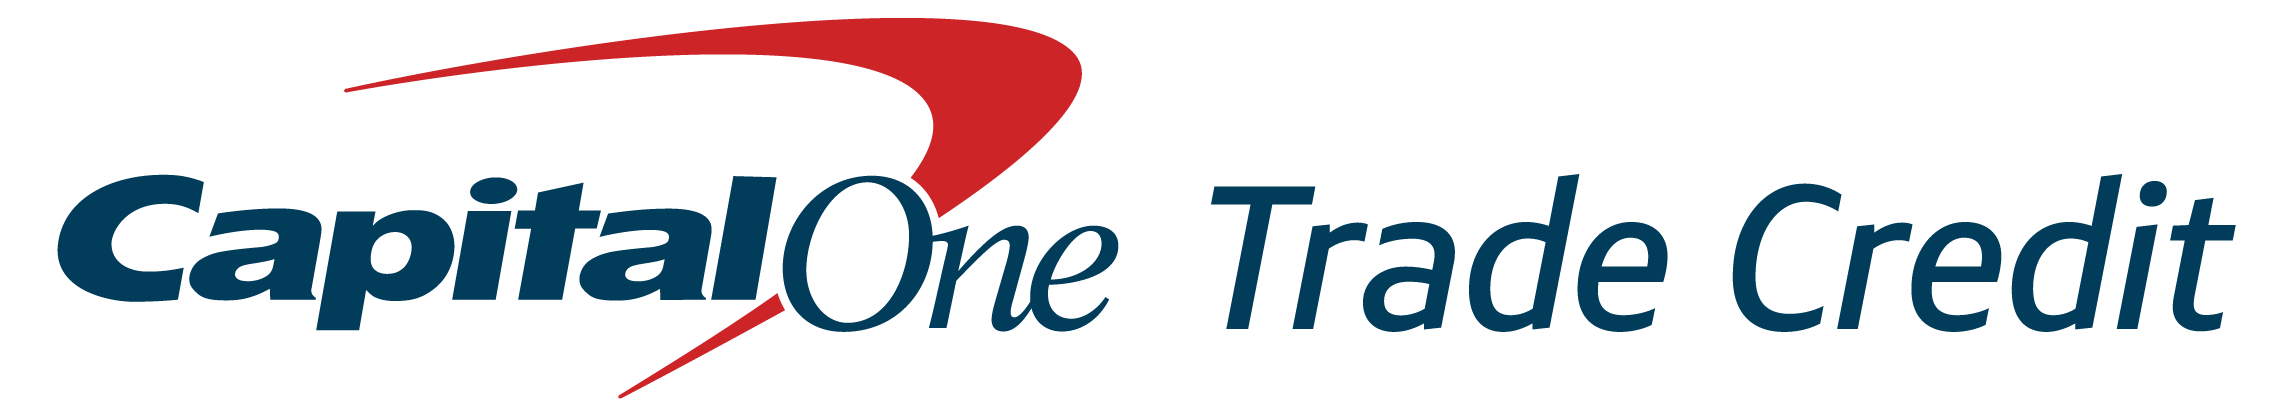 Capital One Trade Credit logo